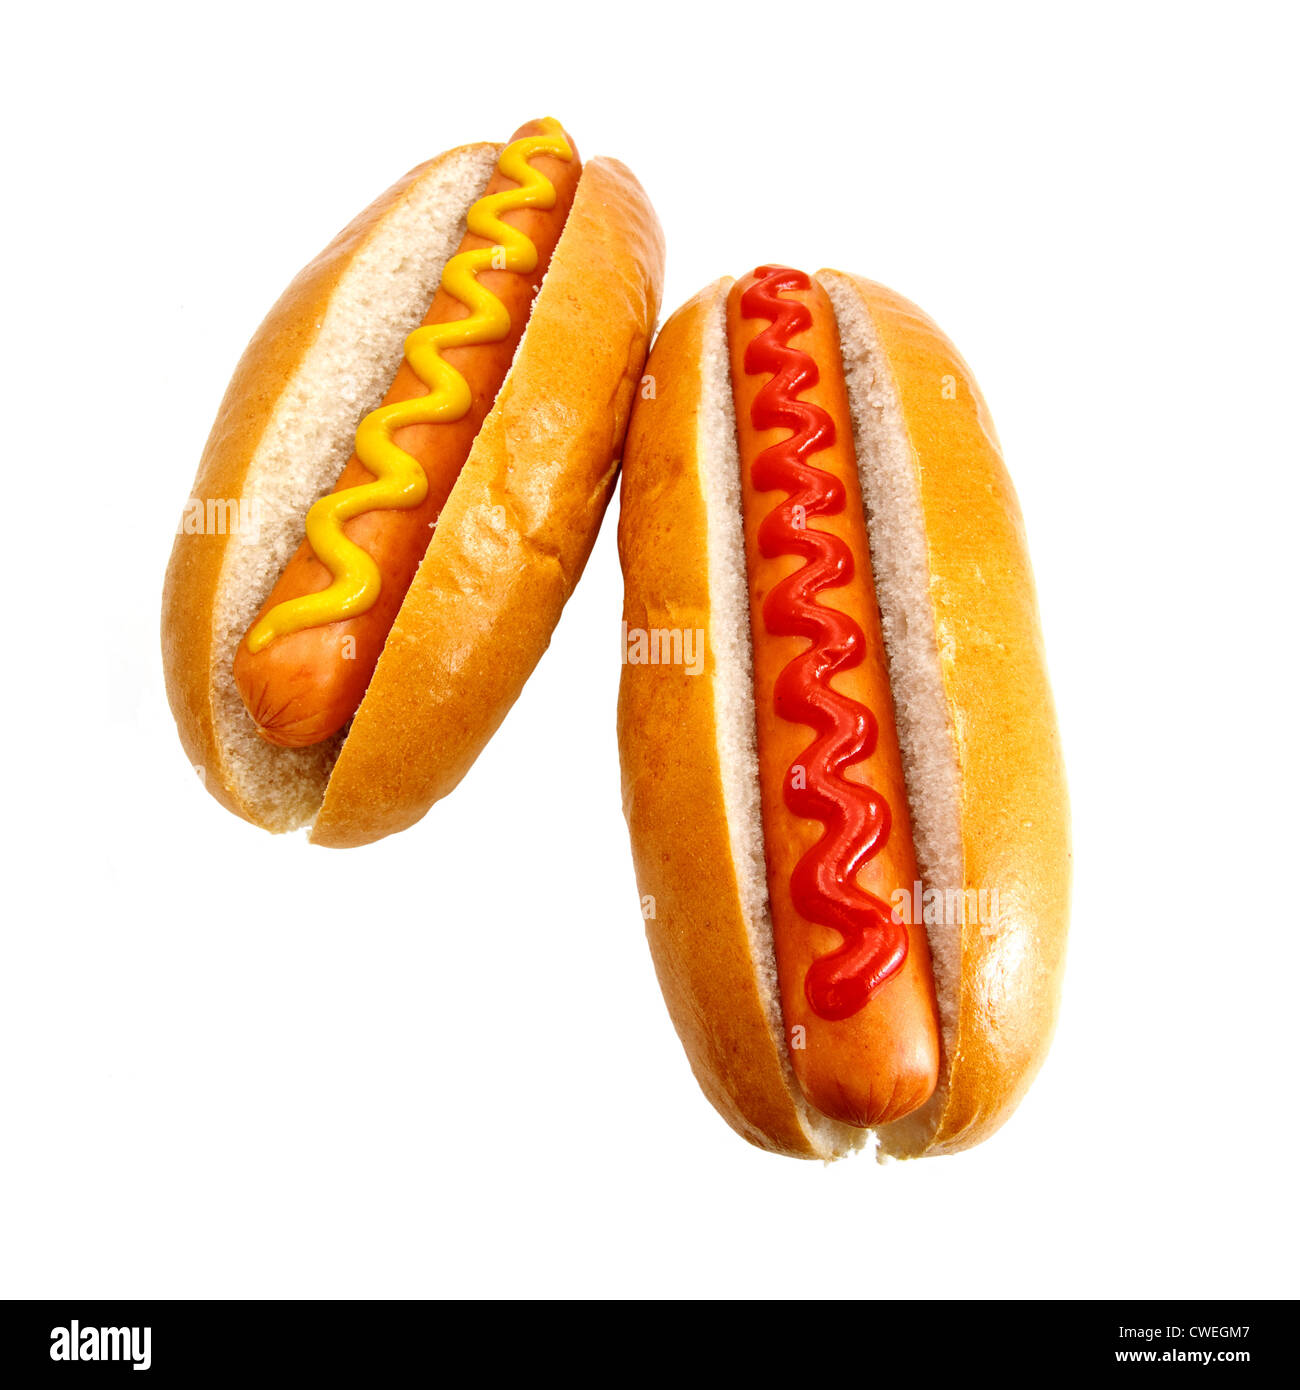 food hot dogs stockfotos food hot dogs bilder alamy. Black Bedroom Furniture Sets. Home Design Ideas